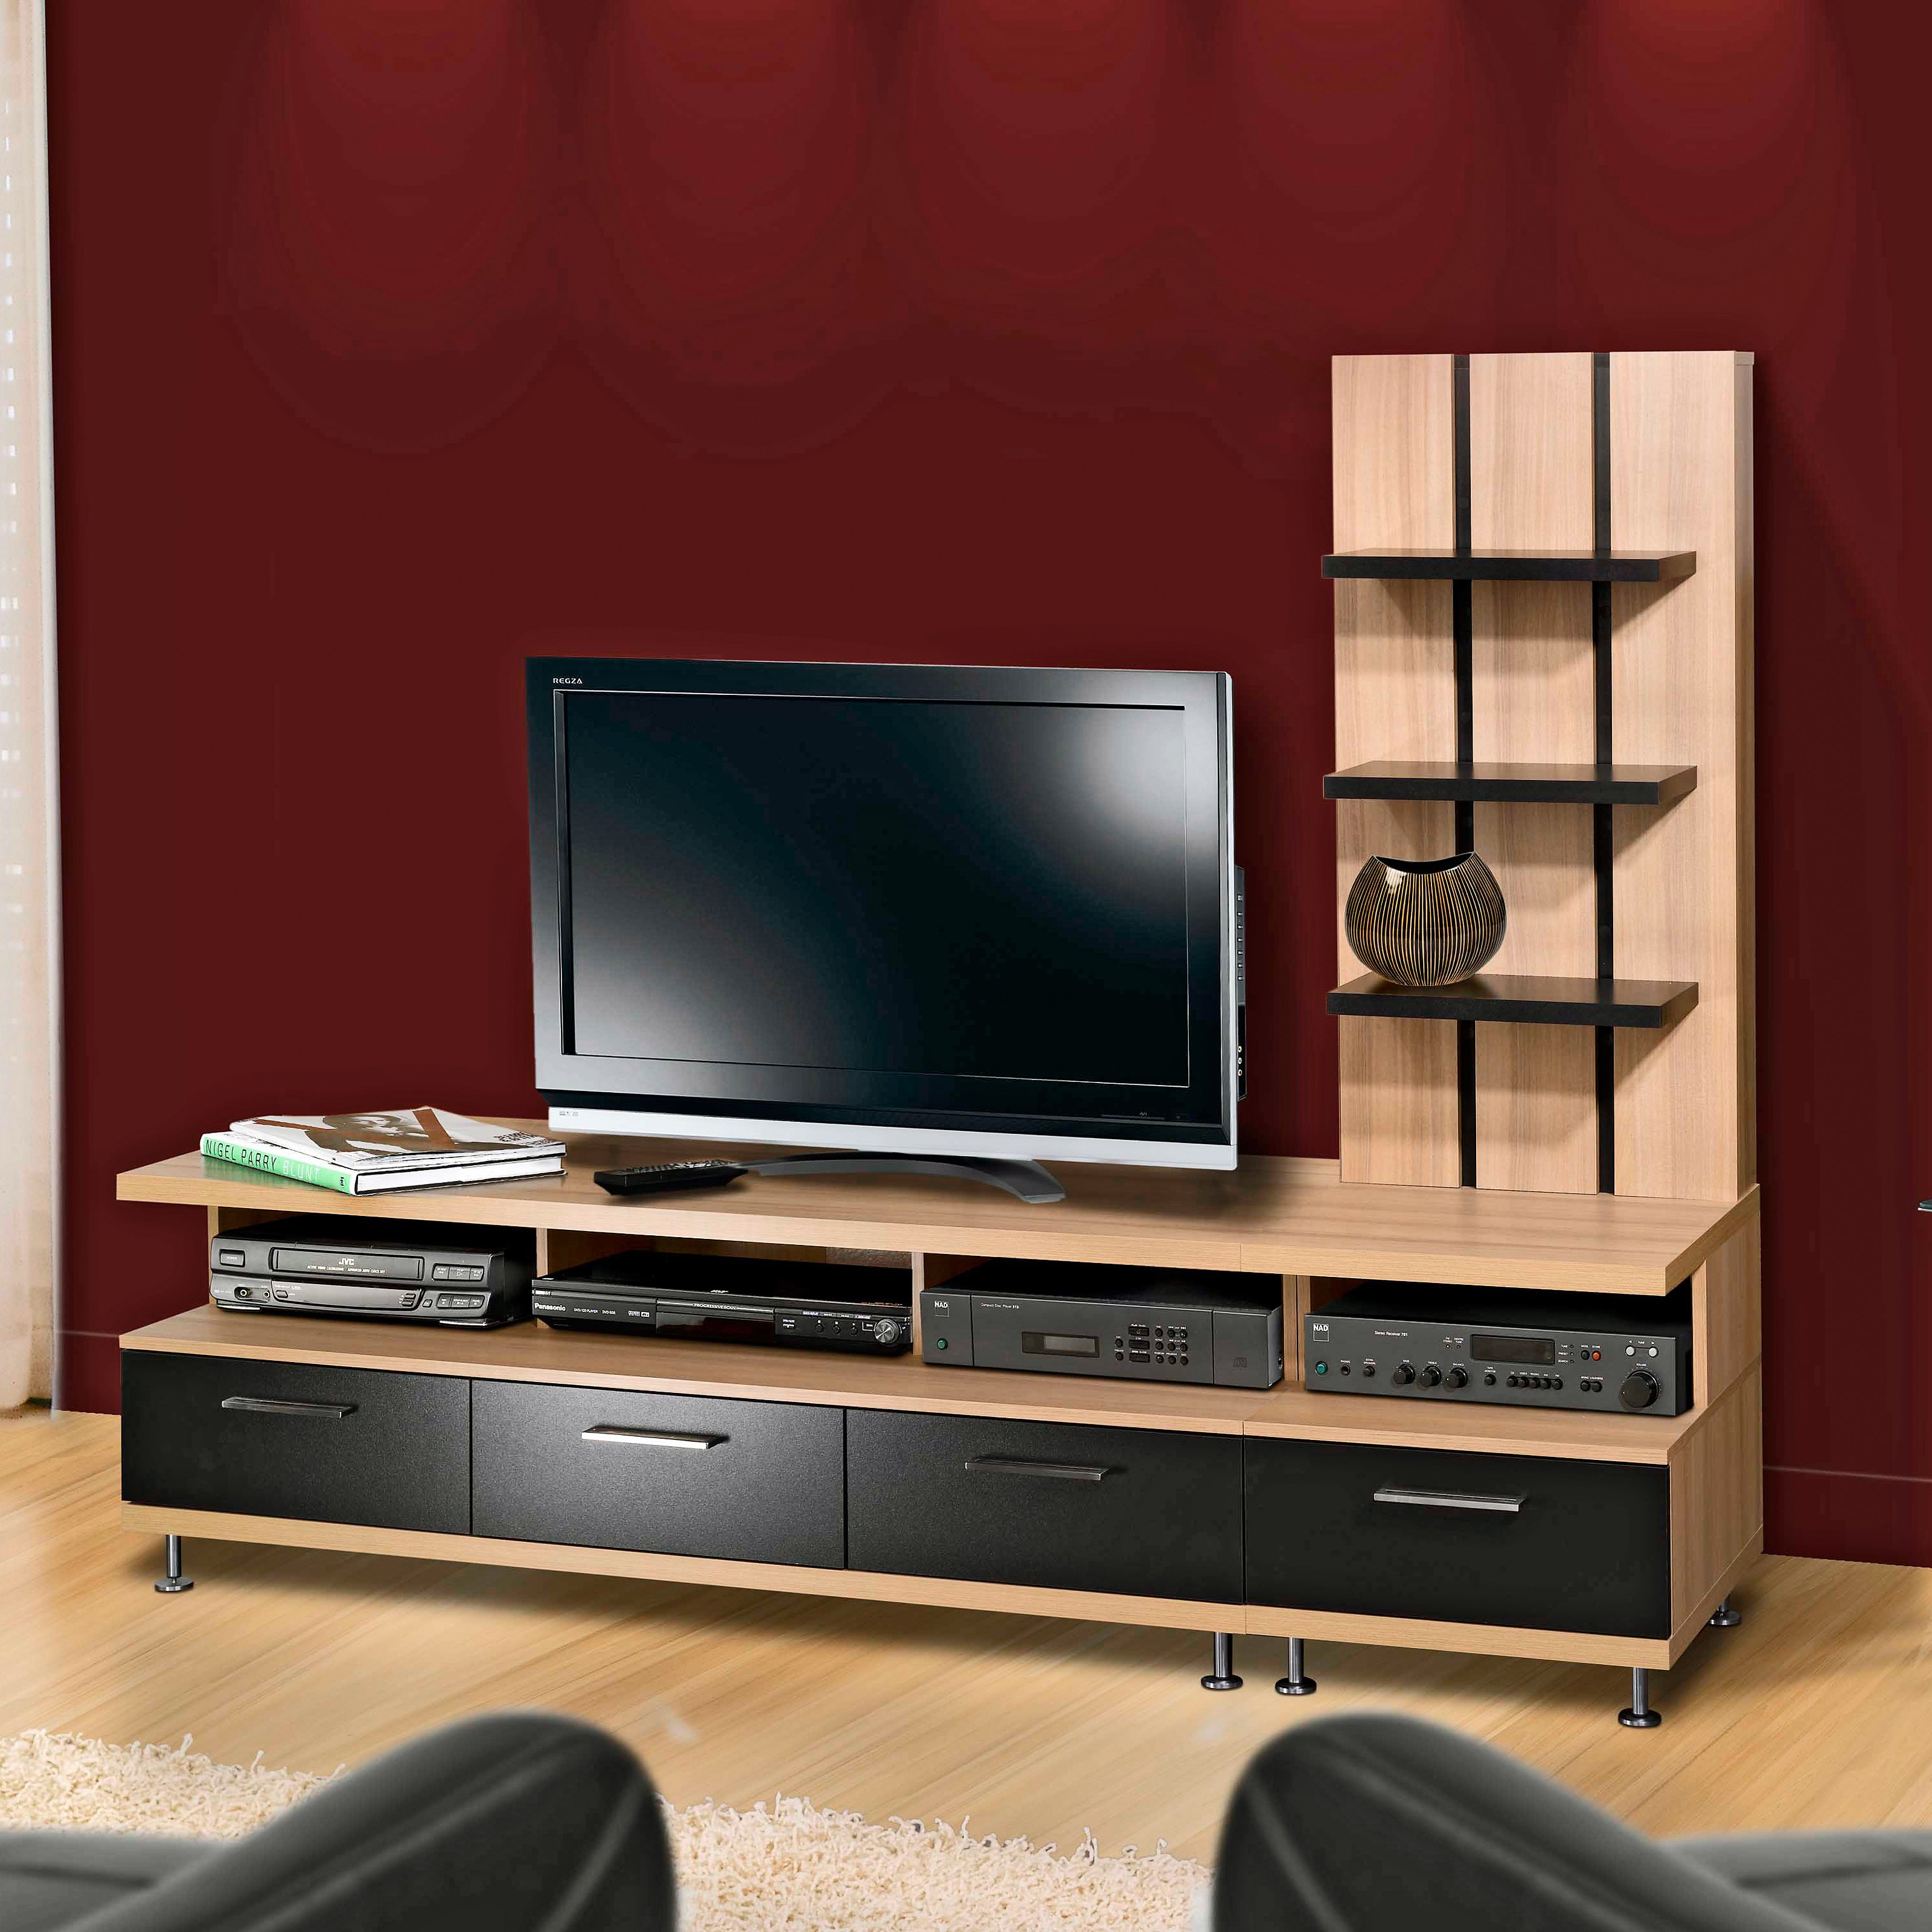 Fashionable Modern Tv Cabinets For Flat Screens With Regard To Best Contemporary Tv Console For Flat Screens — All Contemporary Design (Gallery 4 of 20)